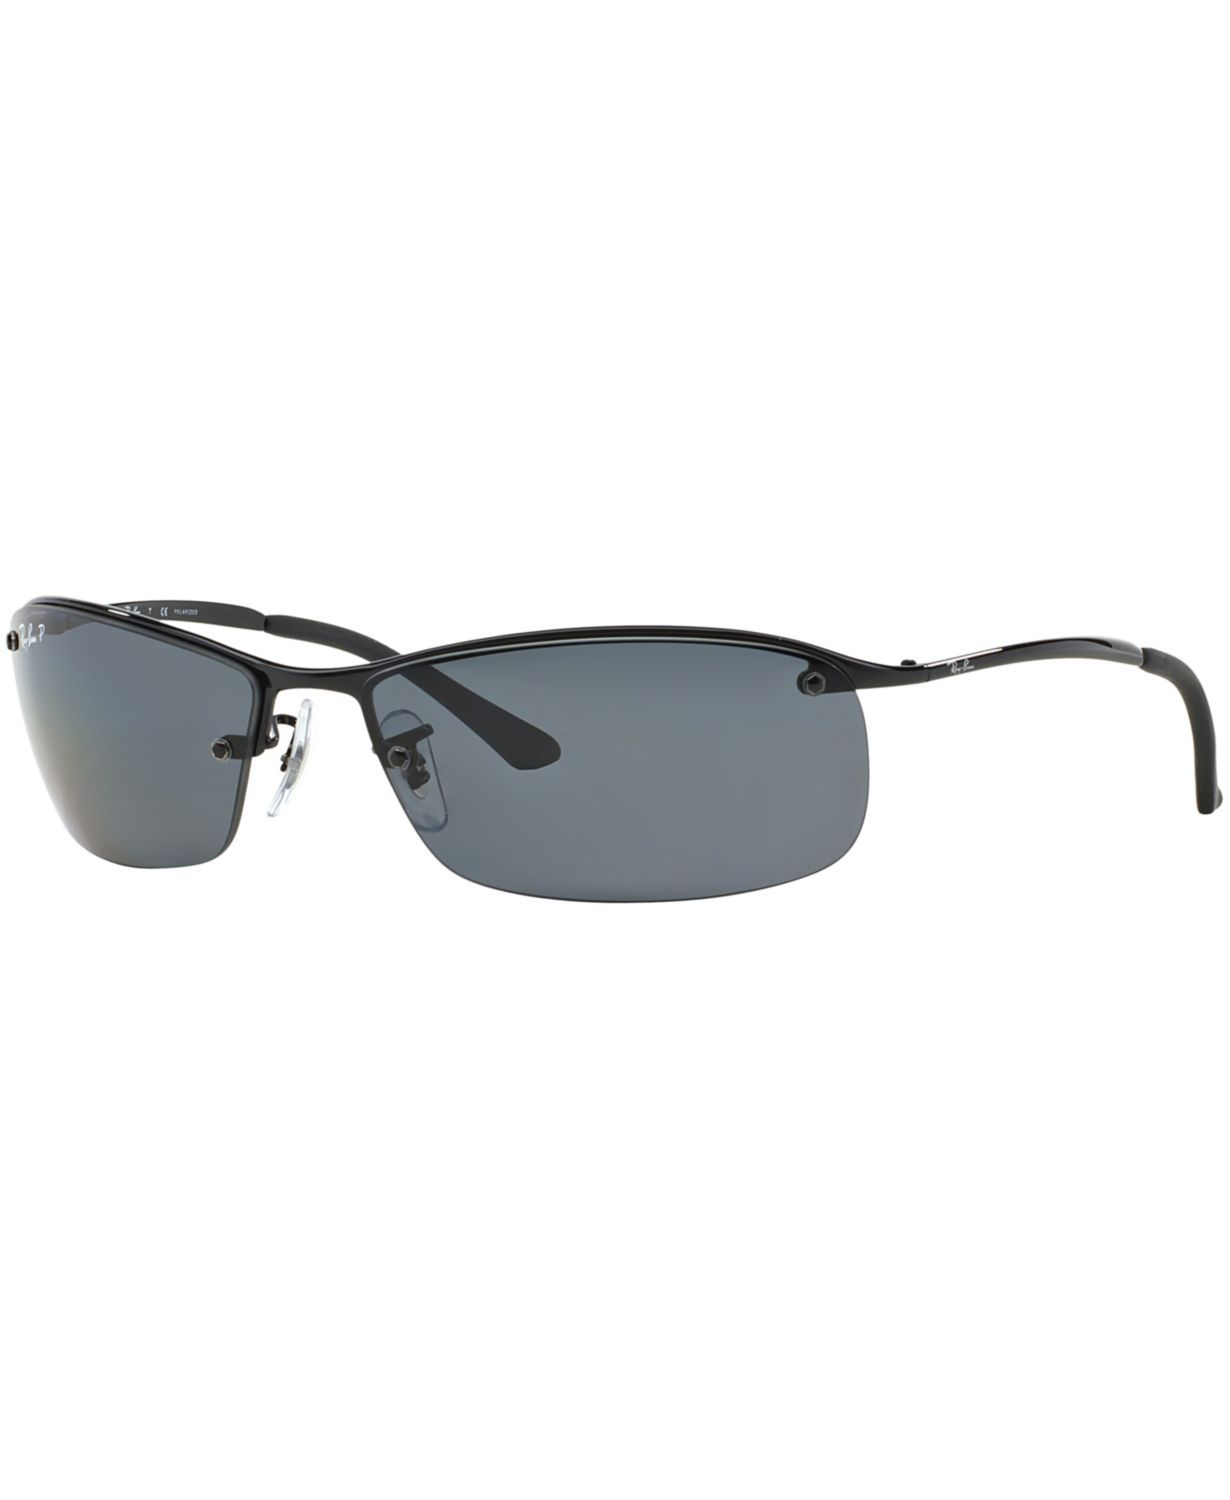 118541d0abf Ray Ban RayBan® Sunglasses - Brown Polarized Lenses RB3549 012 83 ...